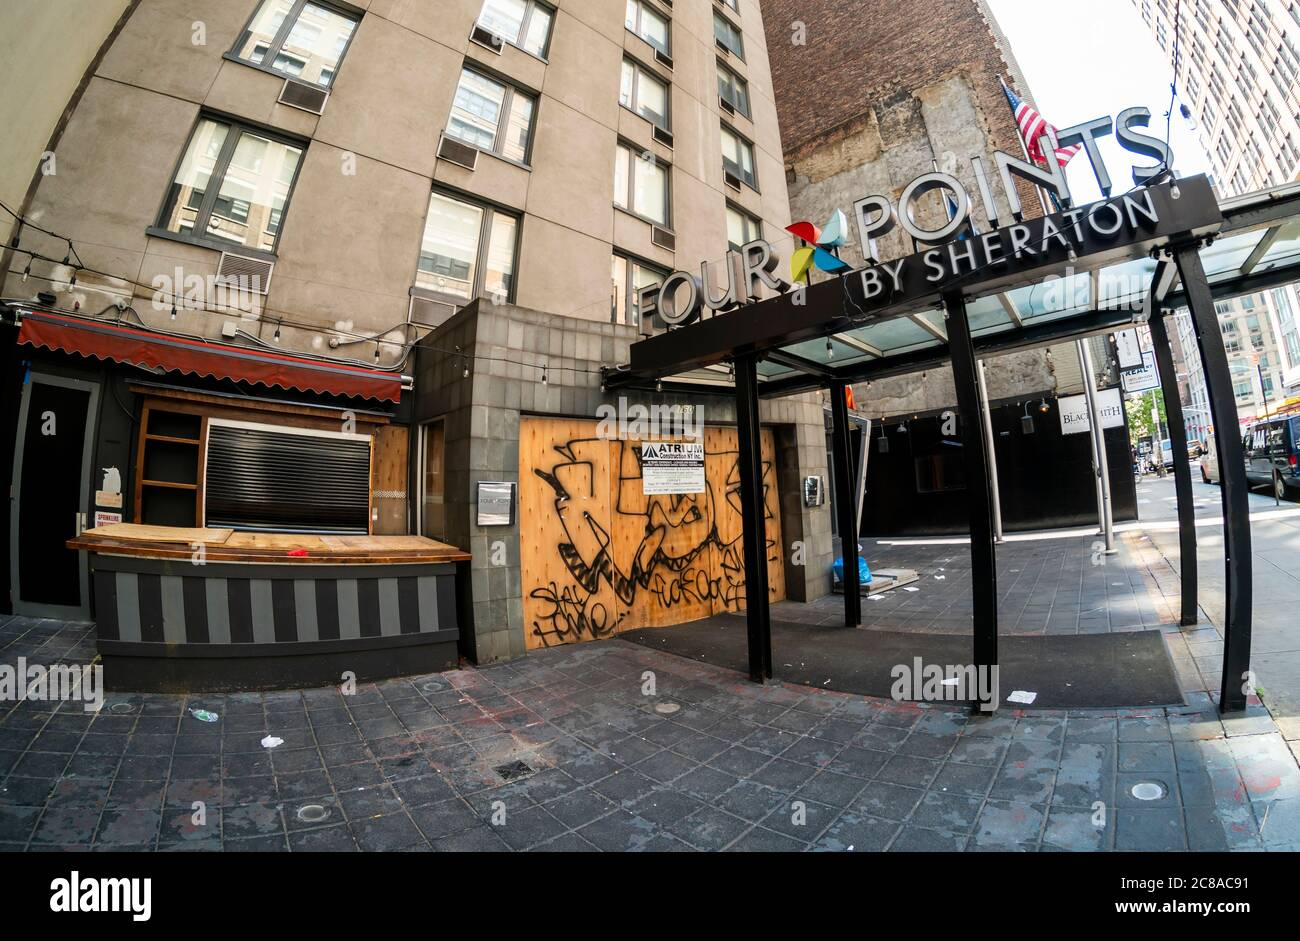 The closed Four Points by Sheraton Hotel in the Chelsea neighborhood of New York on Tuesday, July 21, 2020. New York State is expected to lose over 200,000 jobs in the hospitality industry  due to the covid-19 pandemic shutdown. (© Richard B. Levine) Stock Photo